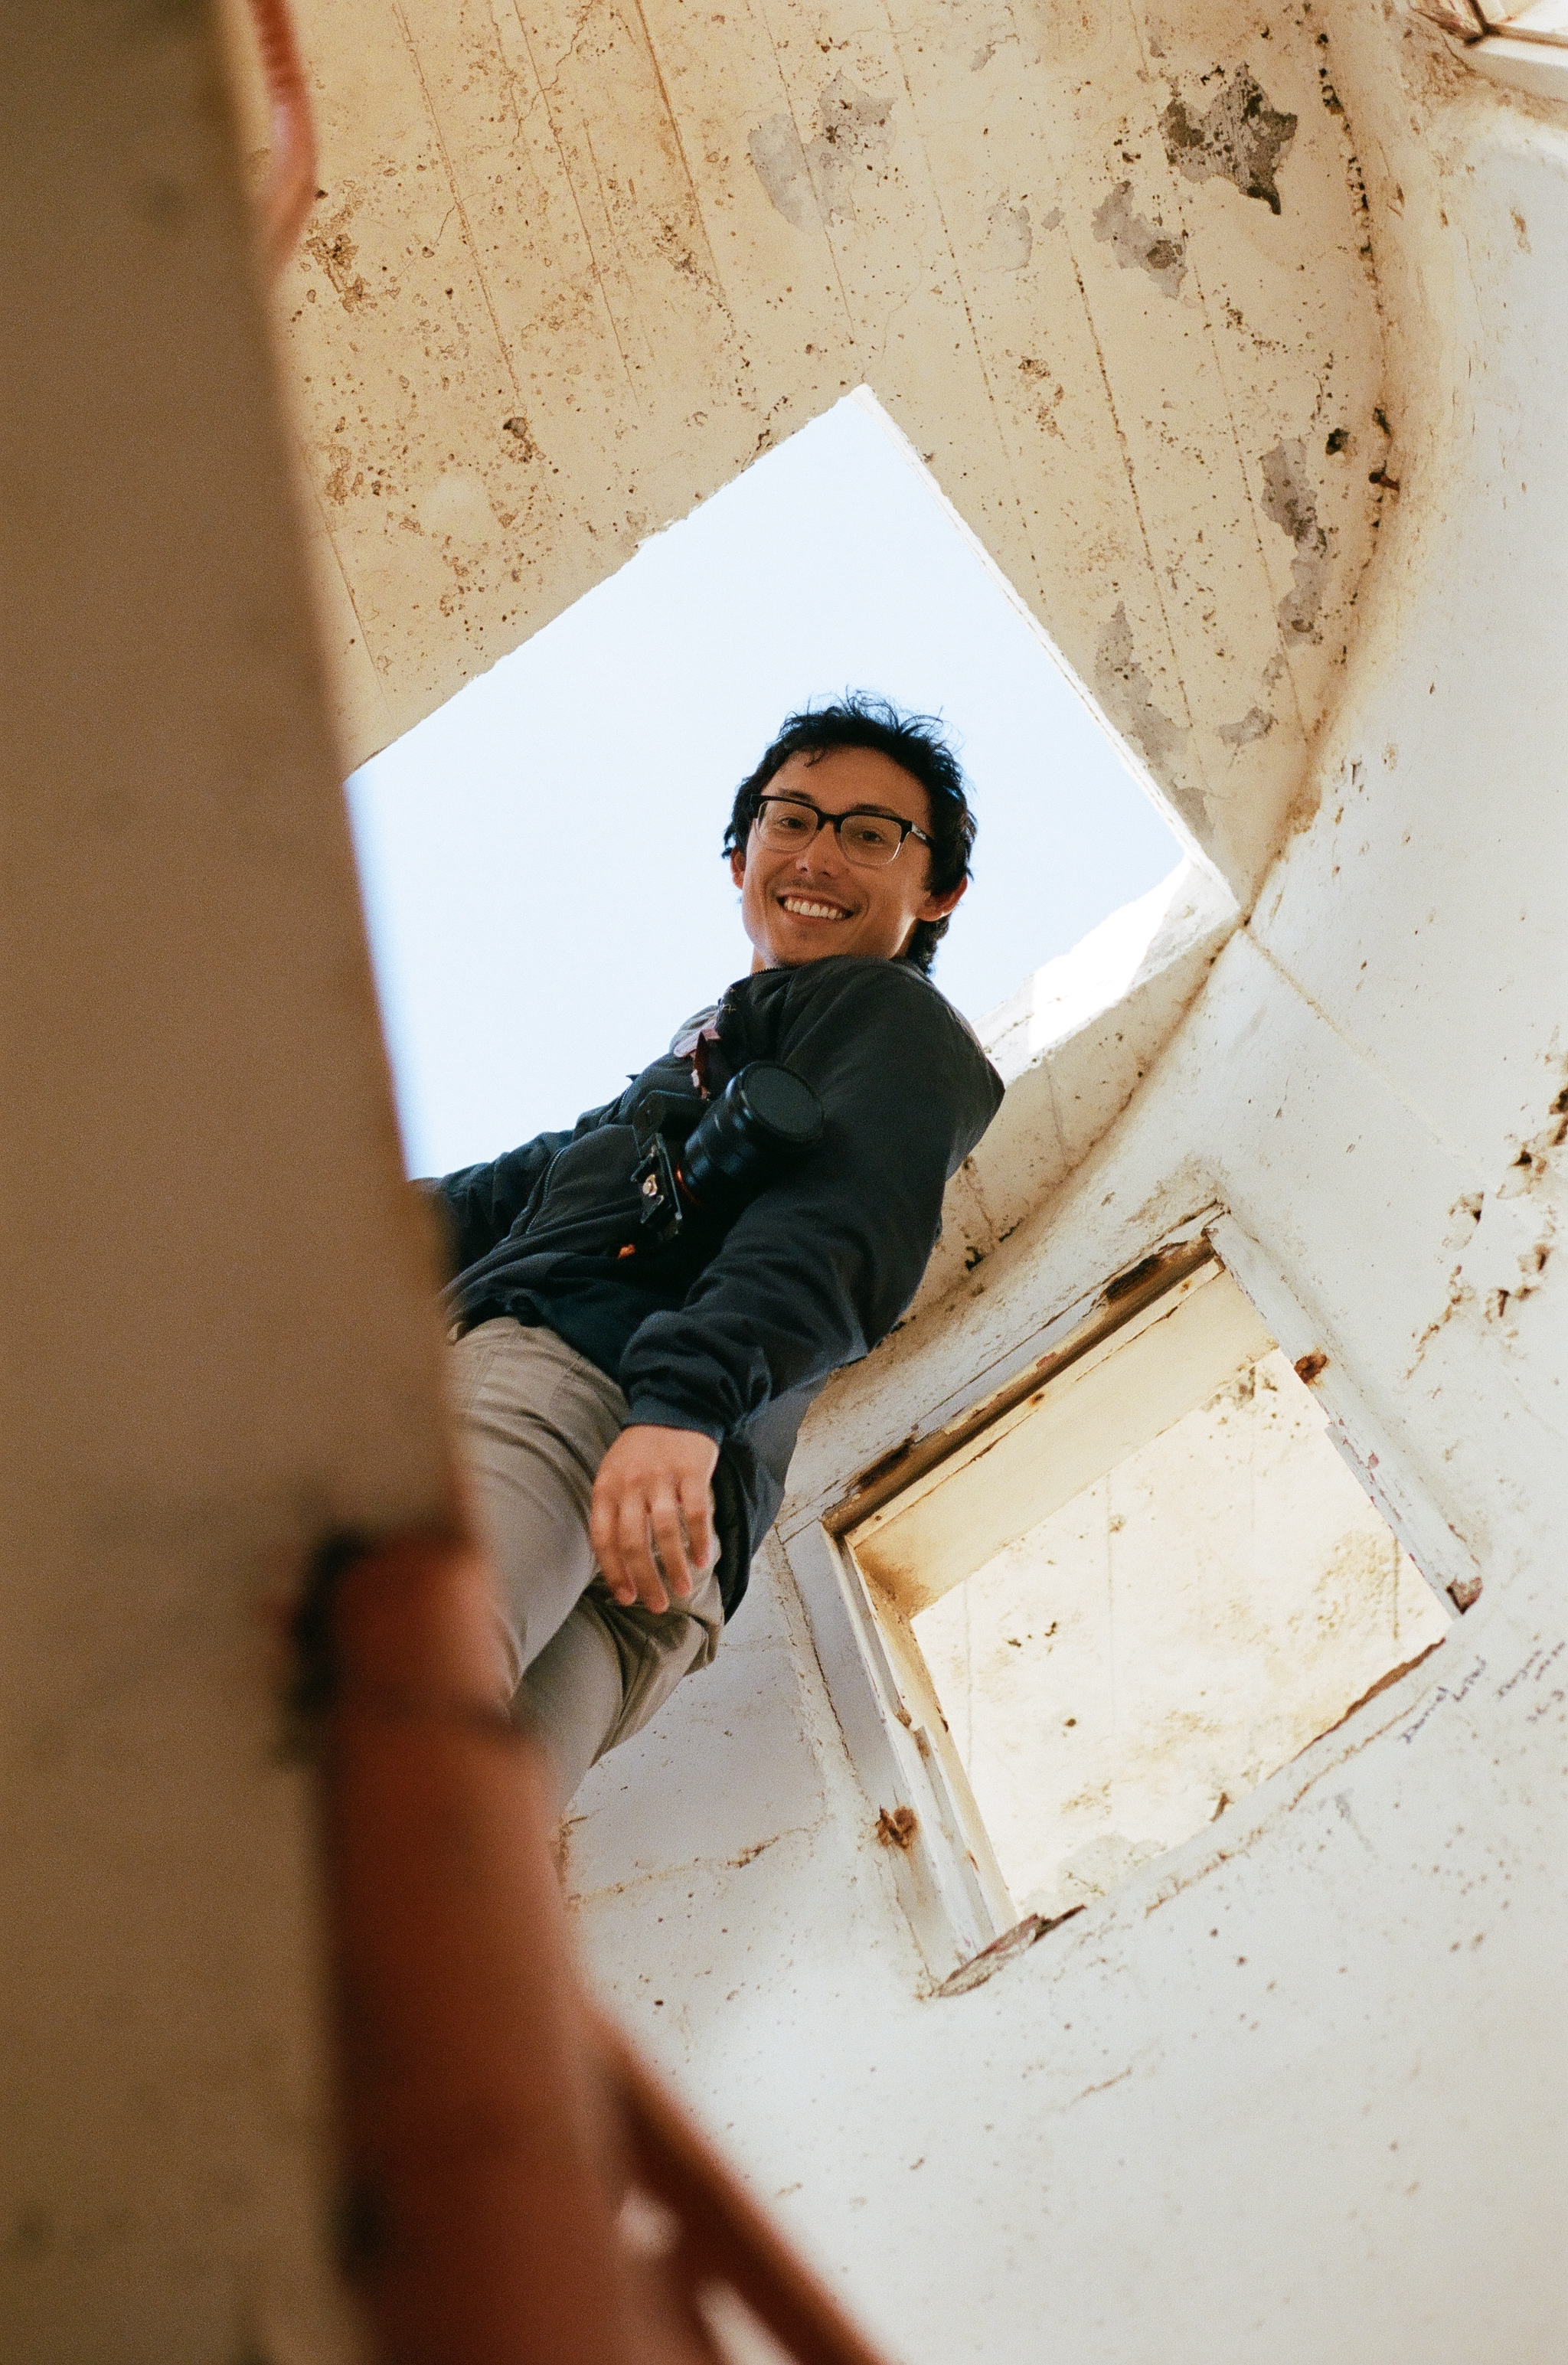 Owen climbing to the top of the lighthouse, 35mm